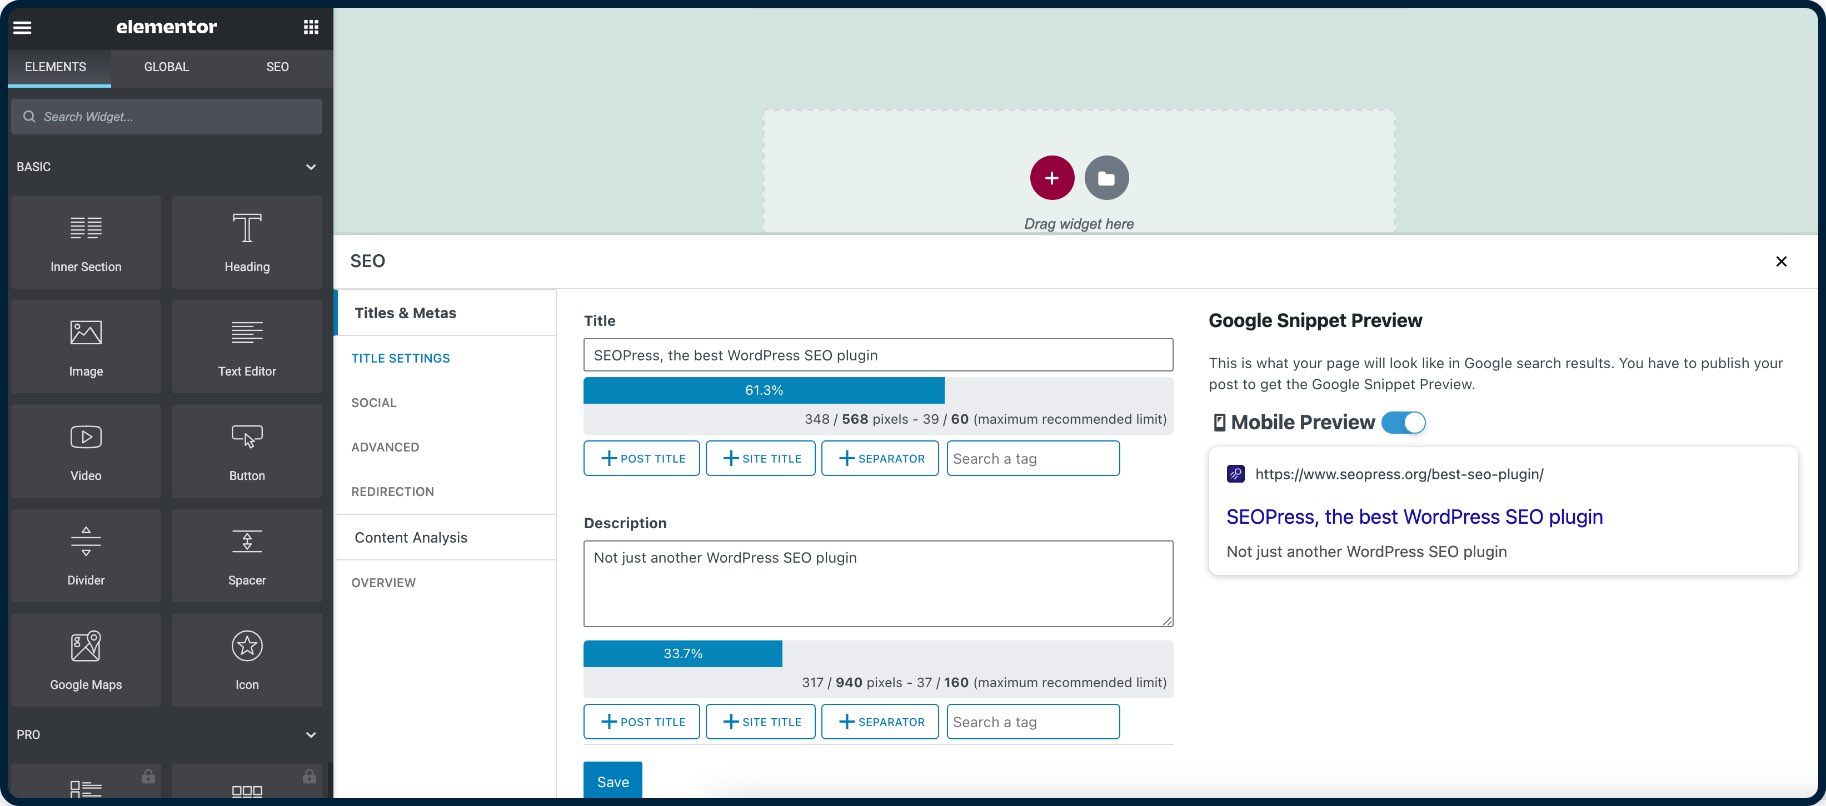 SEOPress integrated with Elementor page builder